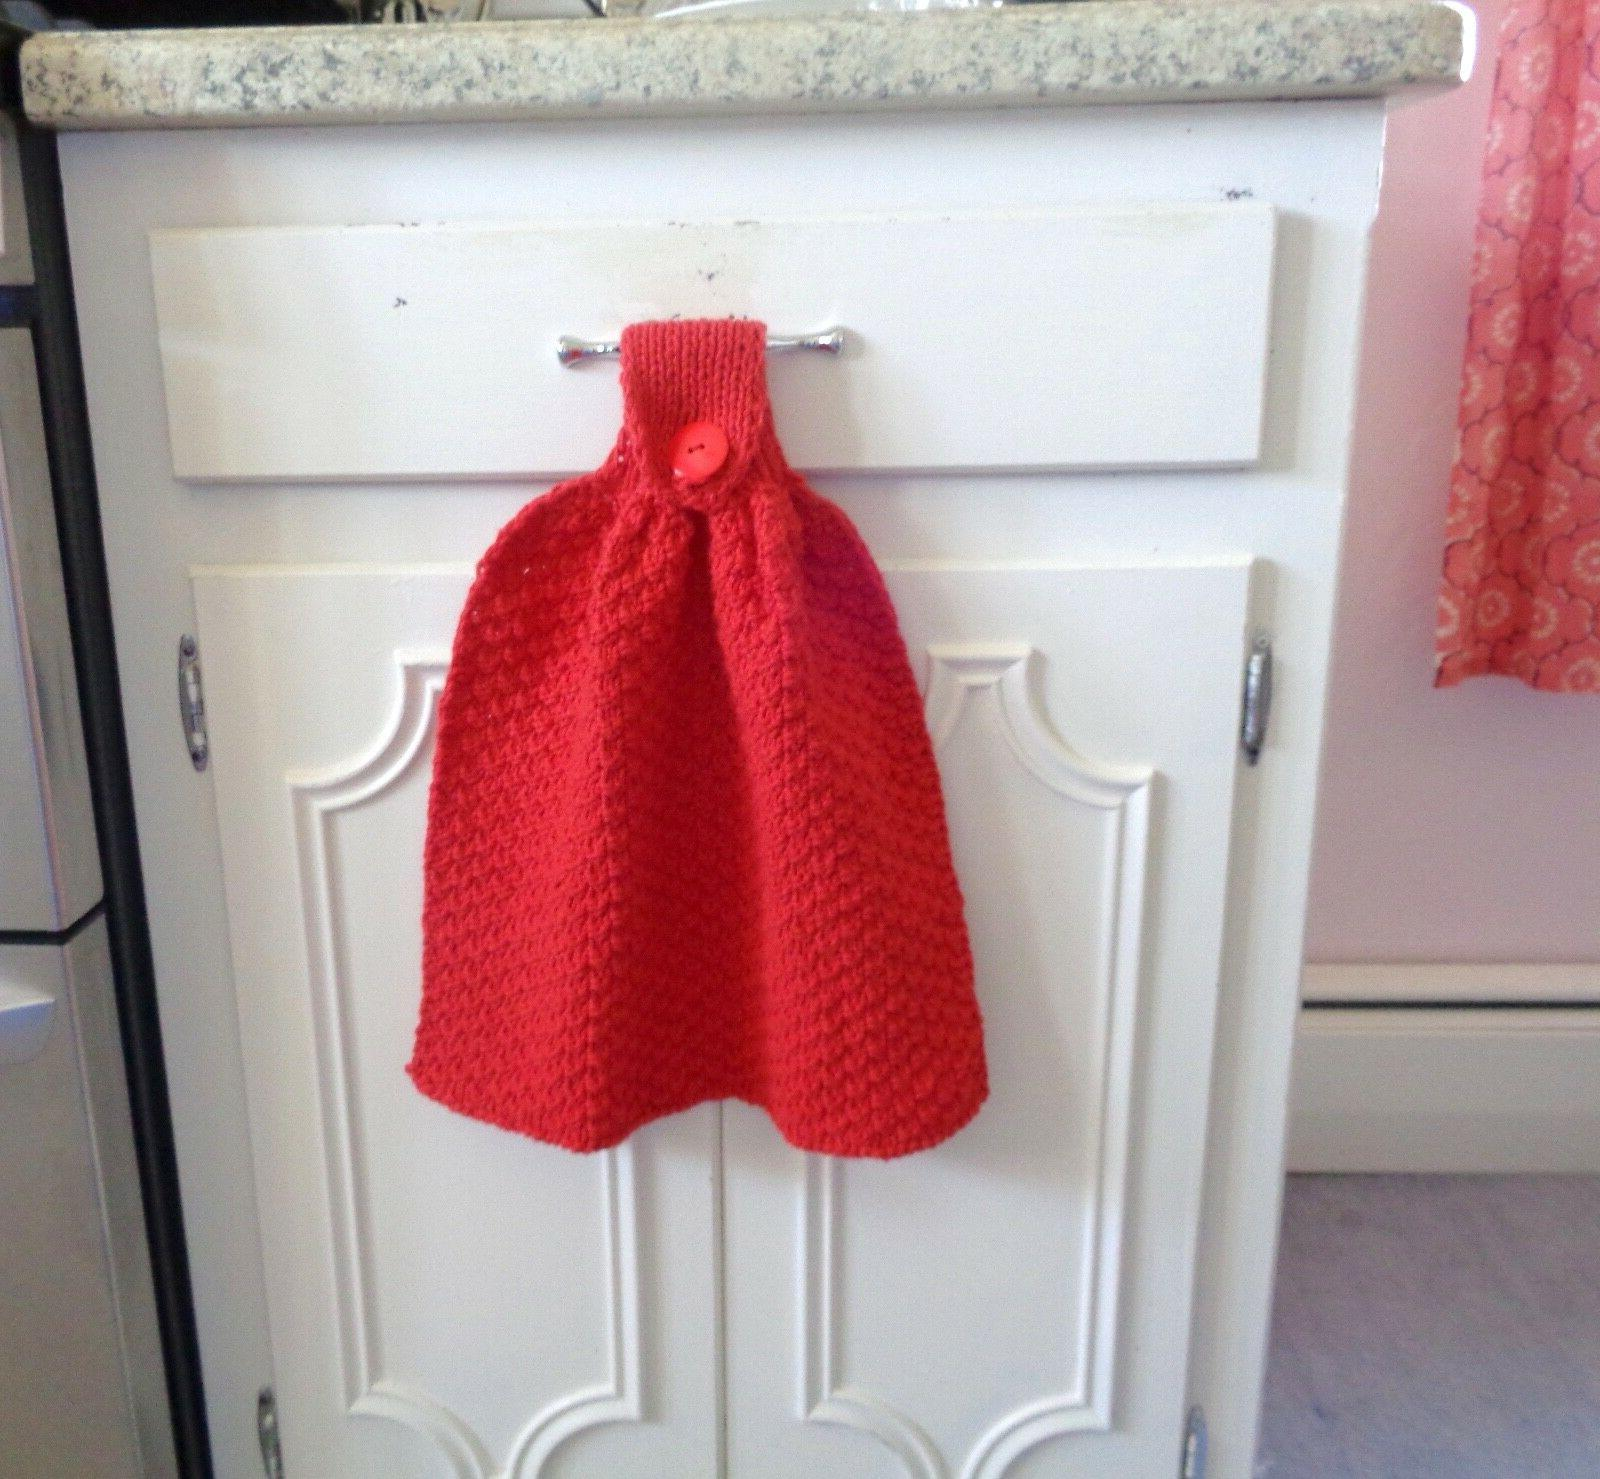 Bright Red Hanging Dishtowels Decorative Kitchen Hand Towel